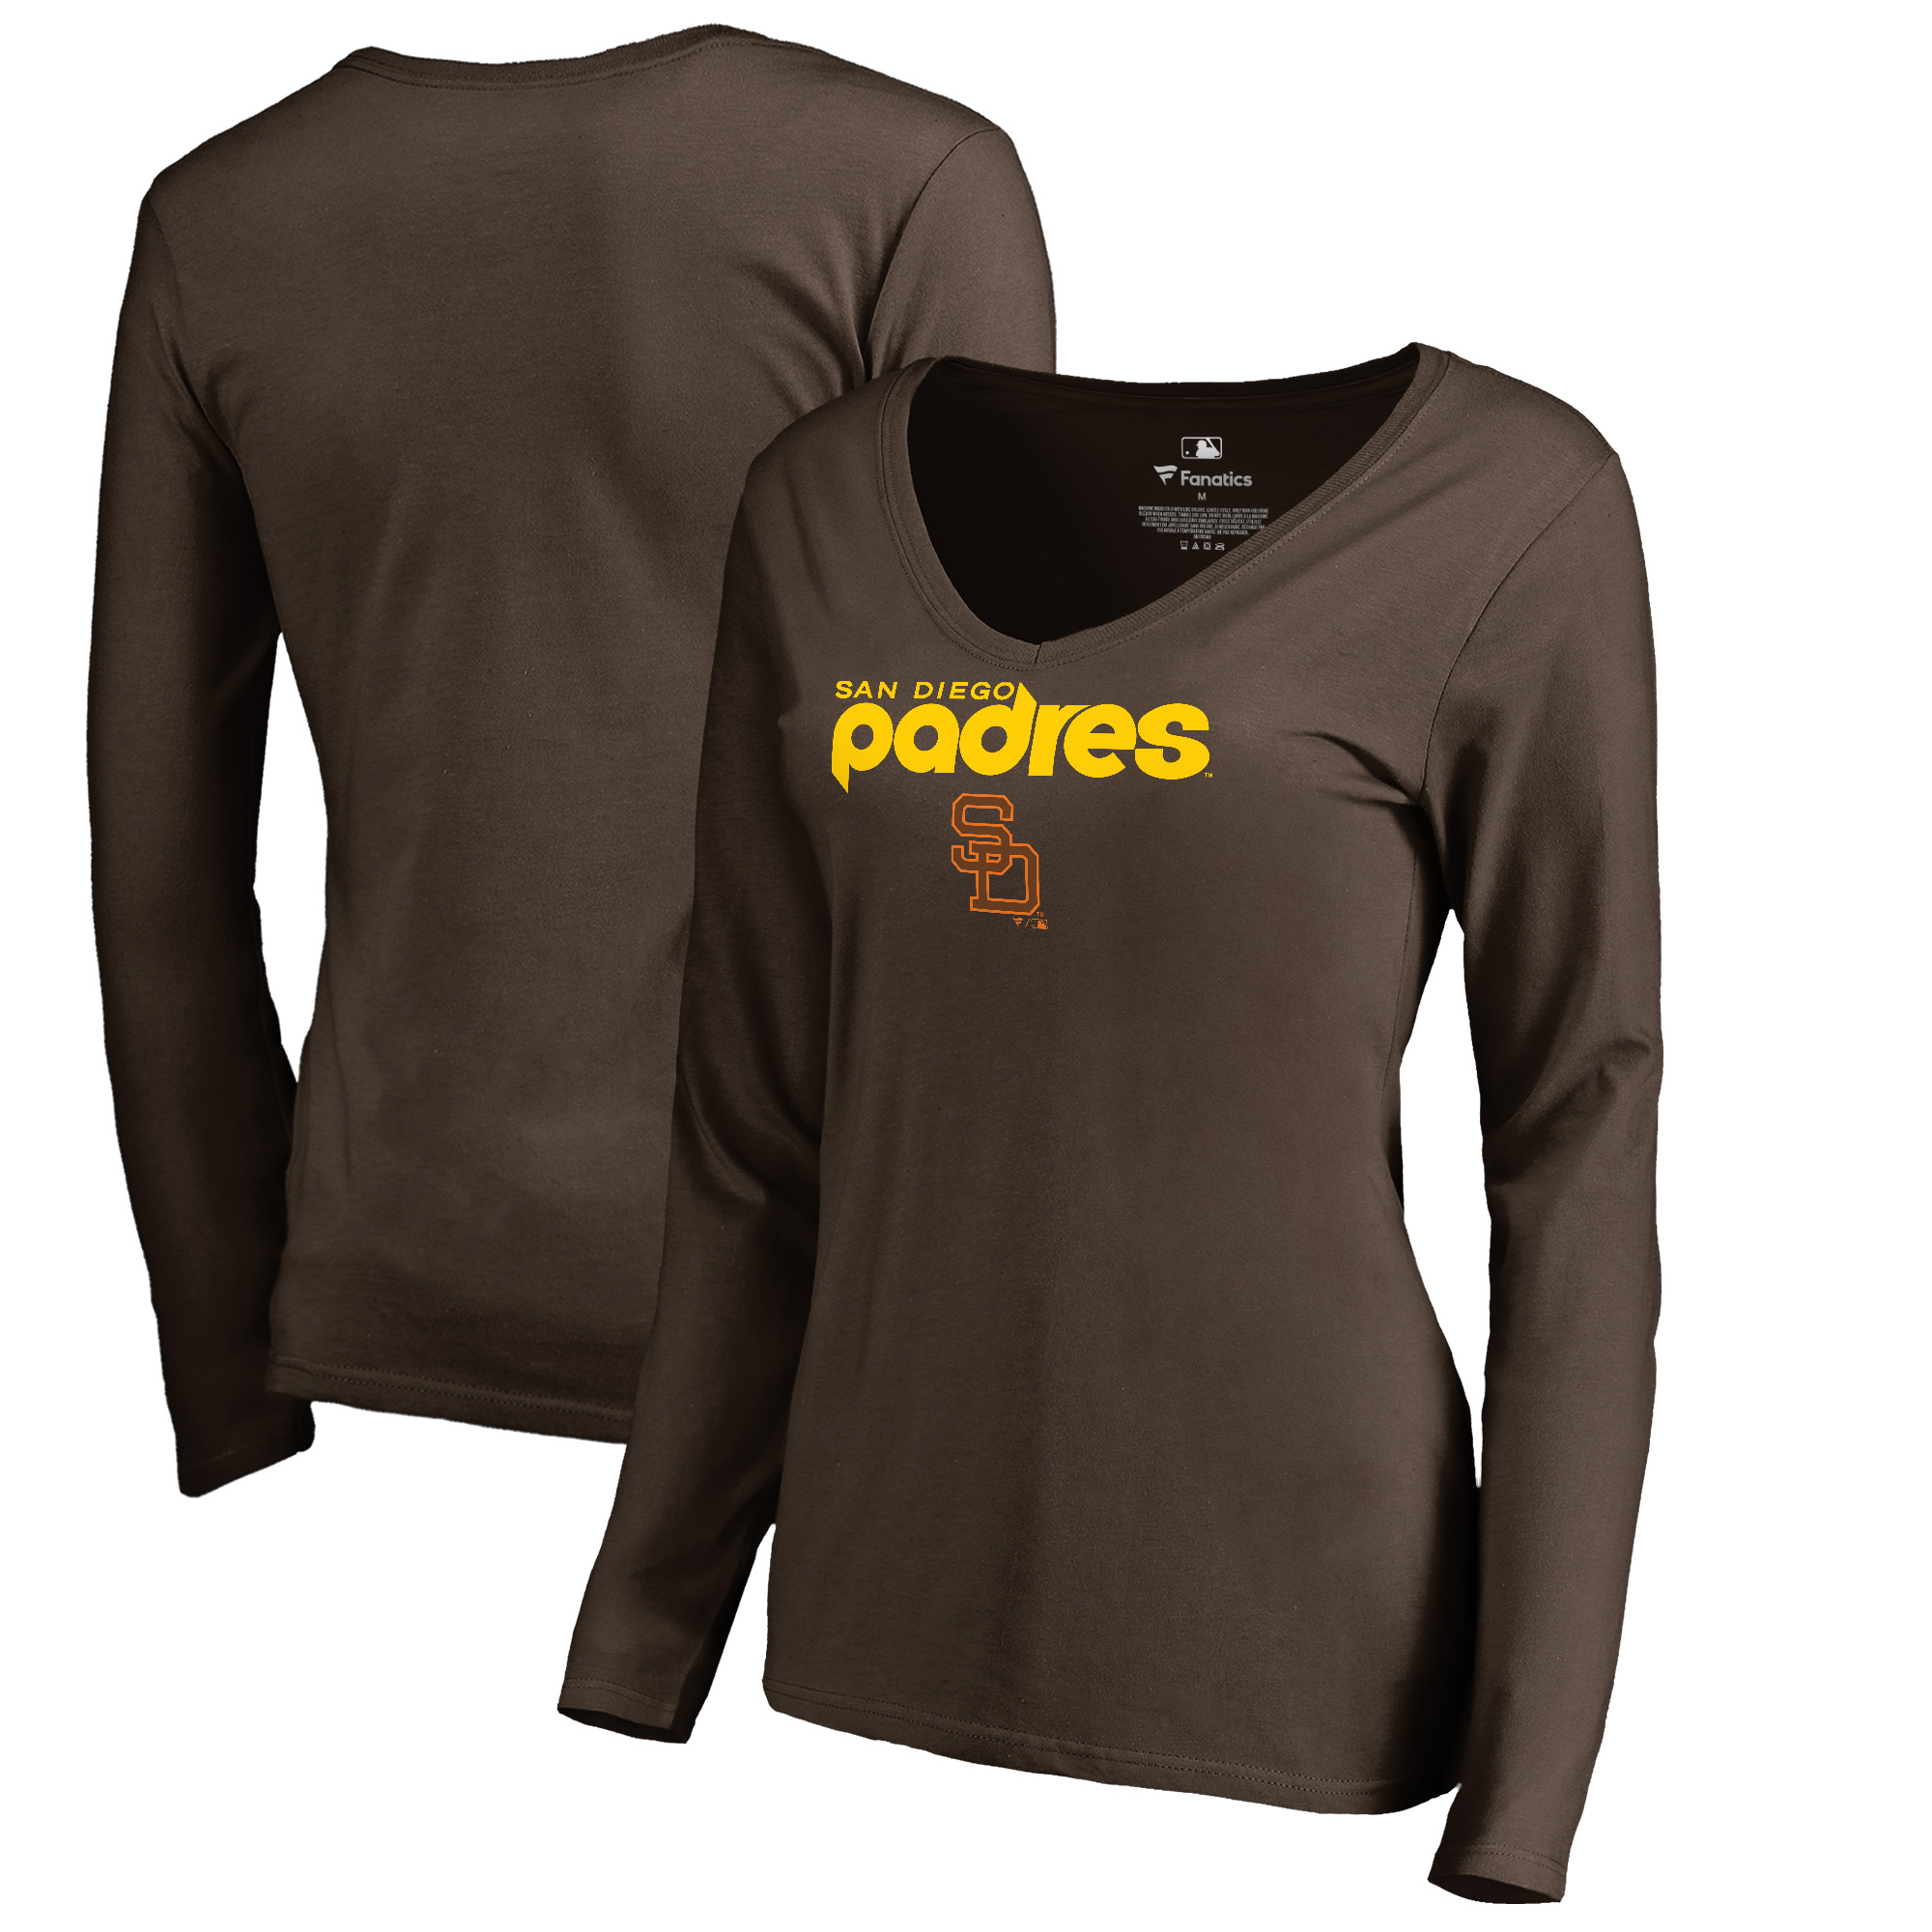 San Diego Padres Fanatics Branded Women's Cooperstown Collection Wahconah Long Sleeve V-Neck T-Shirt - Brown